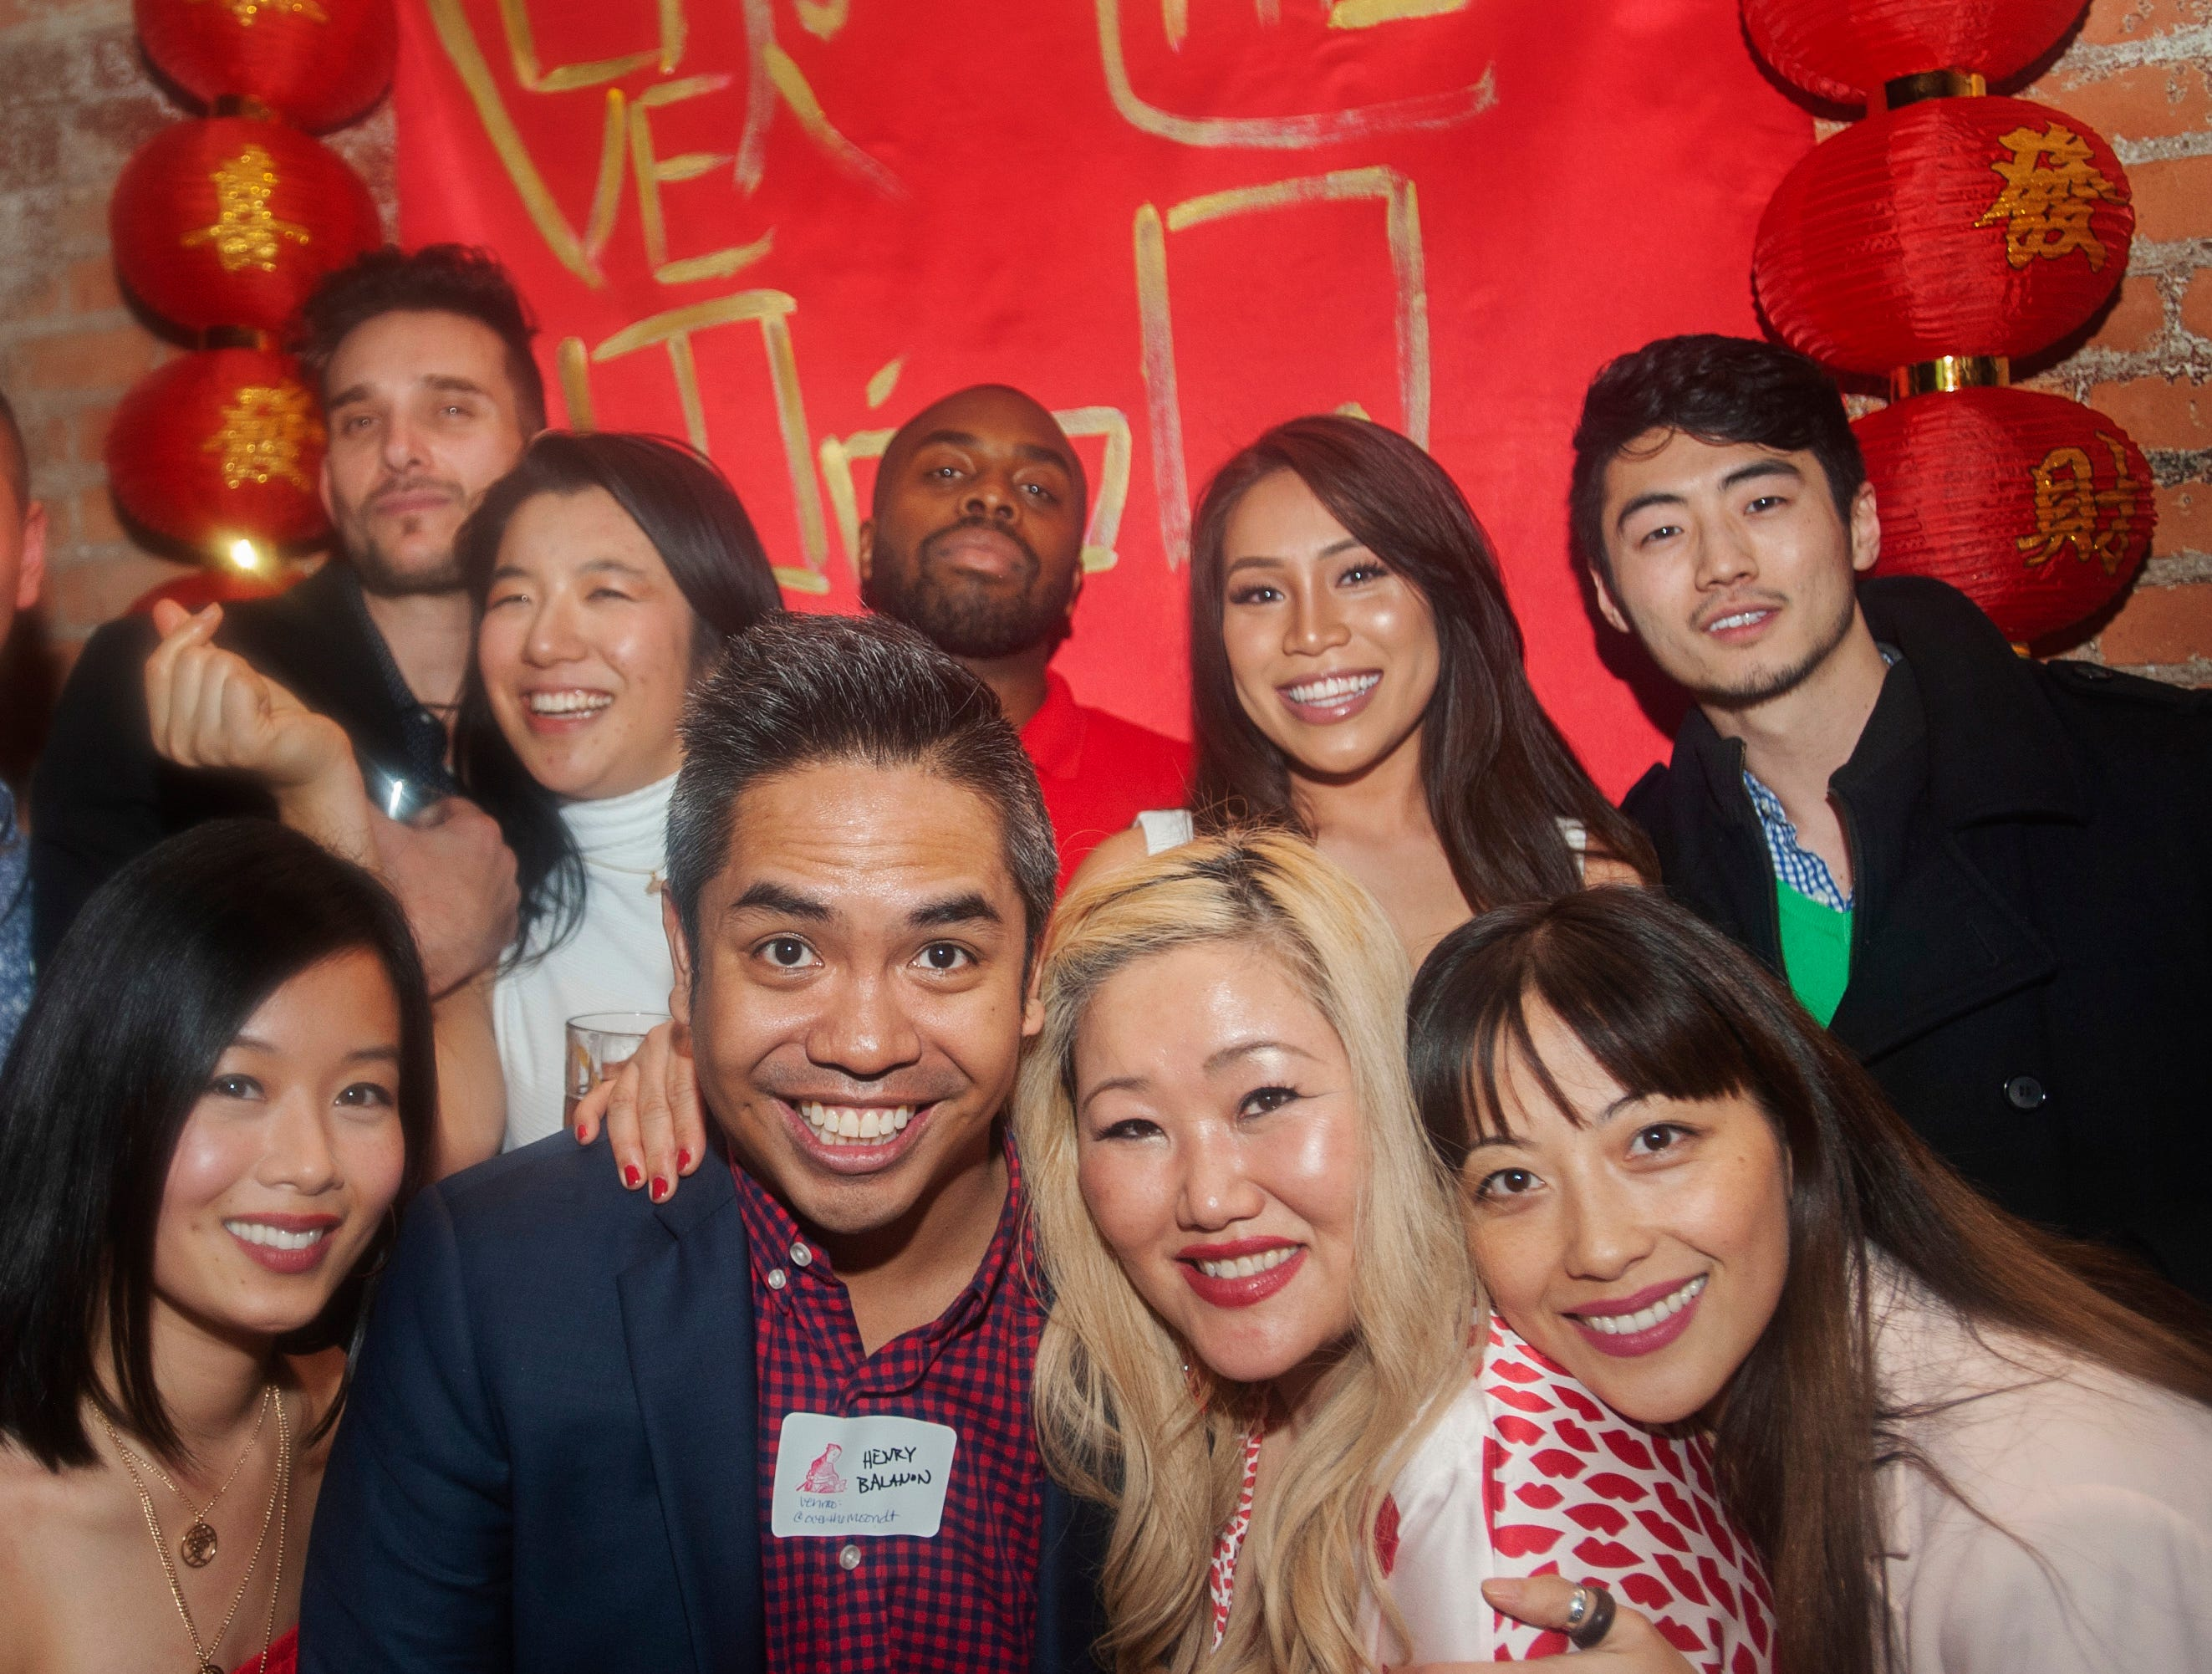 Over the Moon party organizers and attendees, including (from row, from left) Jennifer Vuong, Henry Balanon, Esther Kim, Gowhnou Lee and (backrow from left) Joy Wang, Medvis Jackson, Michelle Nguyen and Stephen Oh, celebrate the Lunar New Year with an east-Asian style party at Detroit City Distillery in Eastern Market on Thursday, February 7, 2019.